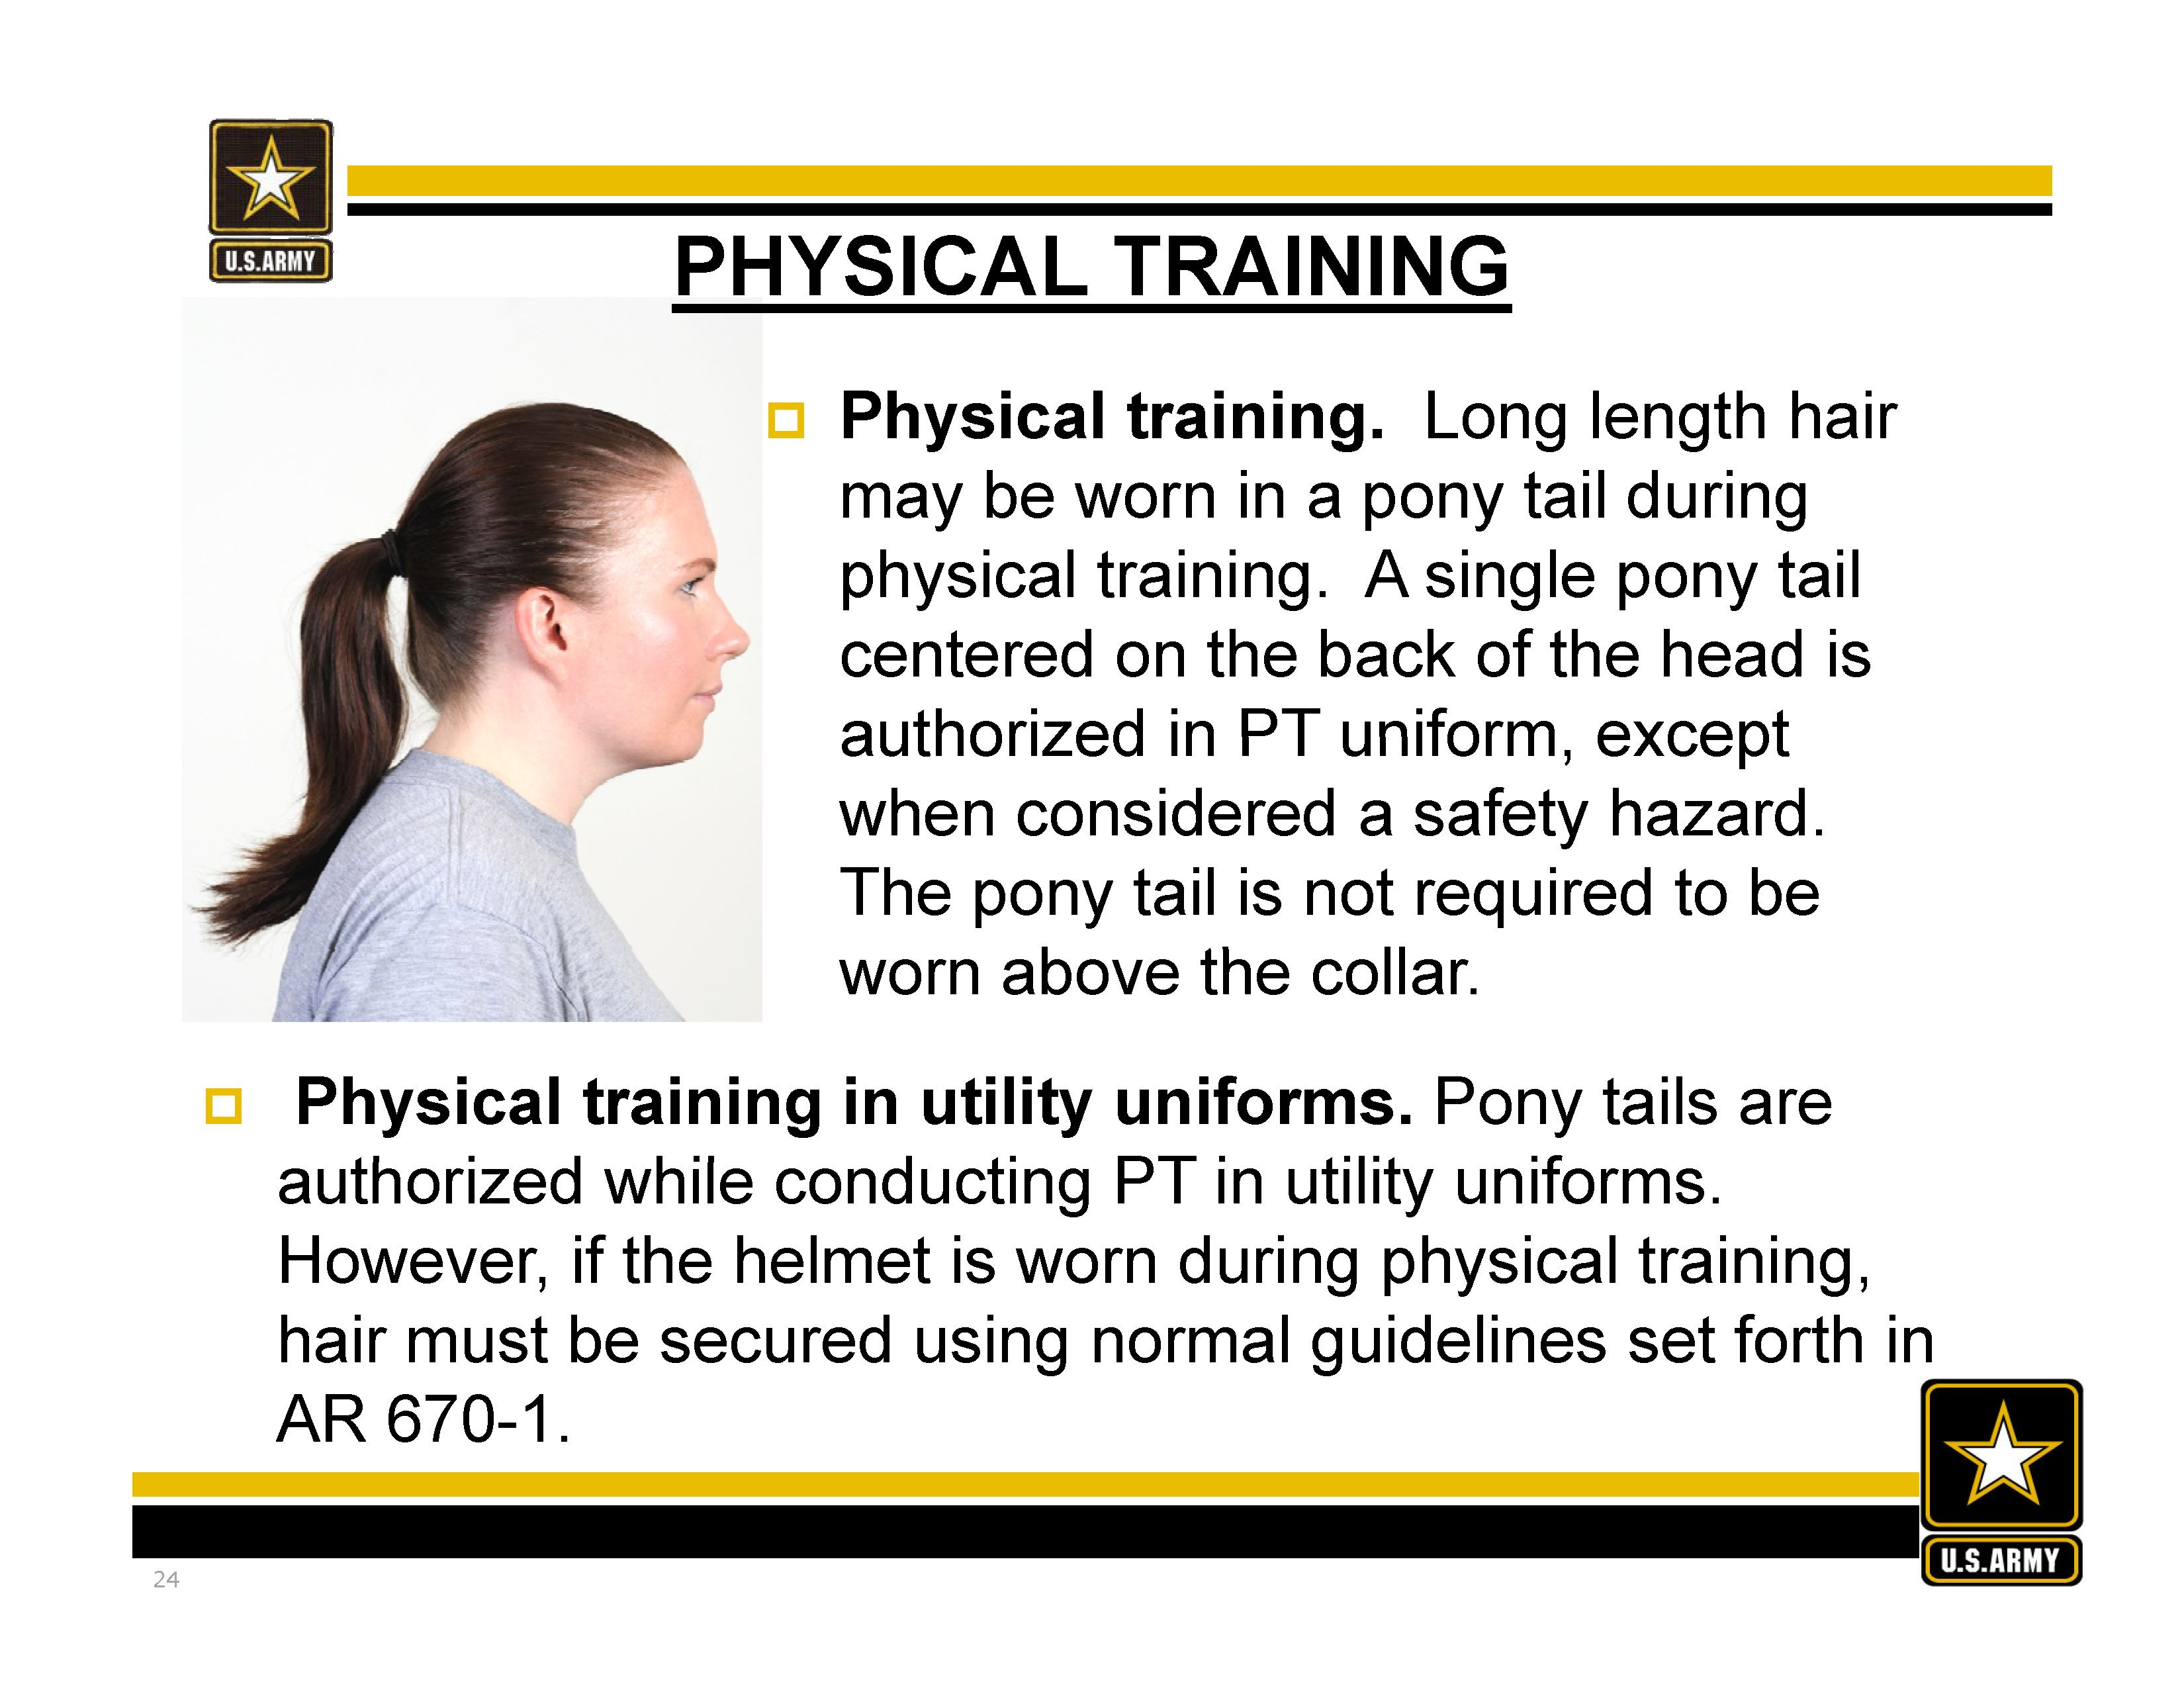 new army hair regulations - ar 670-1 as of 31 march 2014 #ponytail